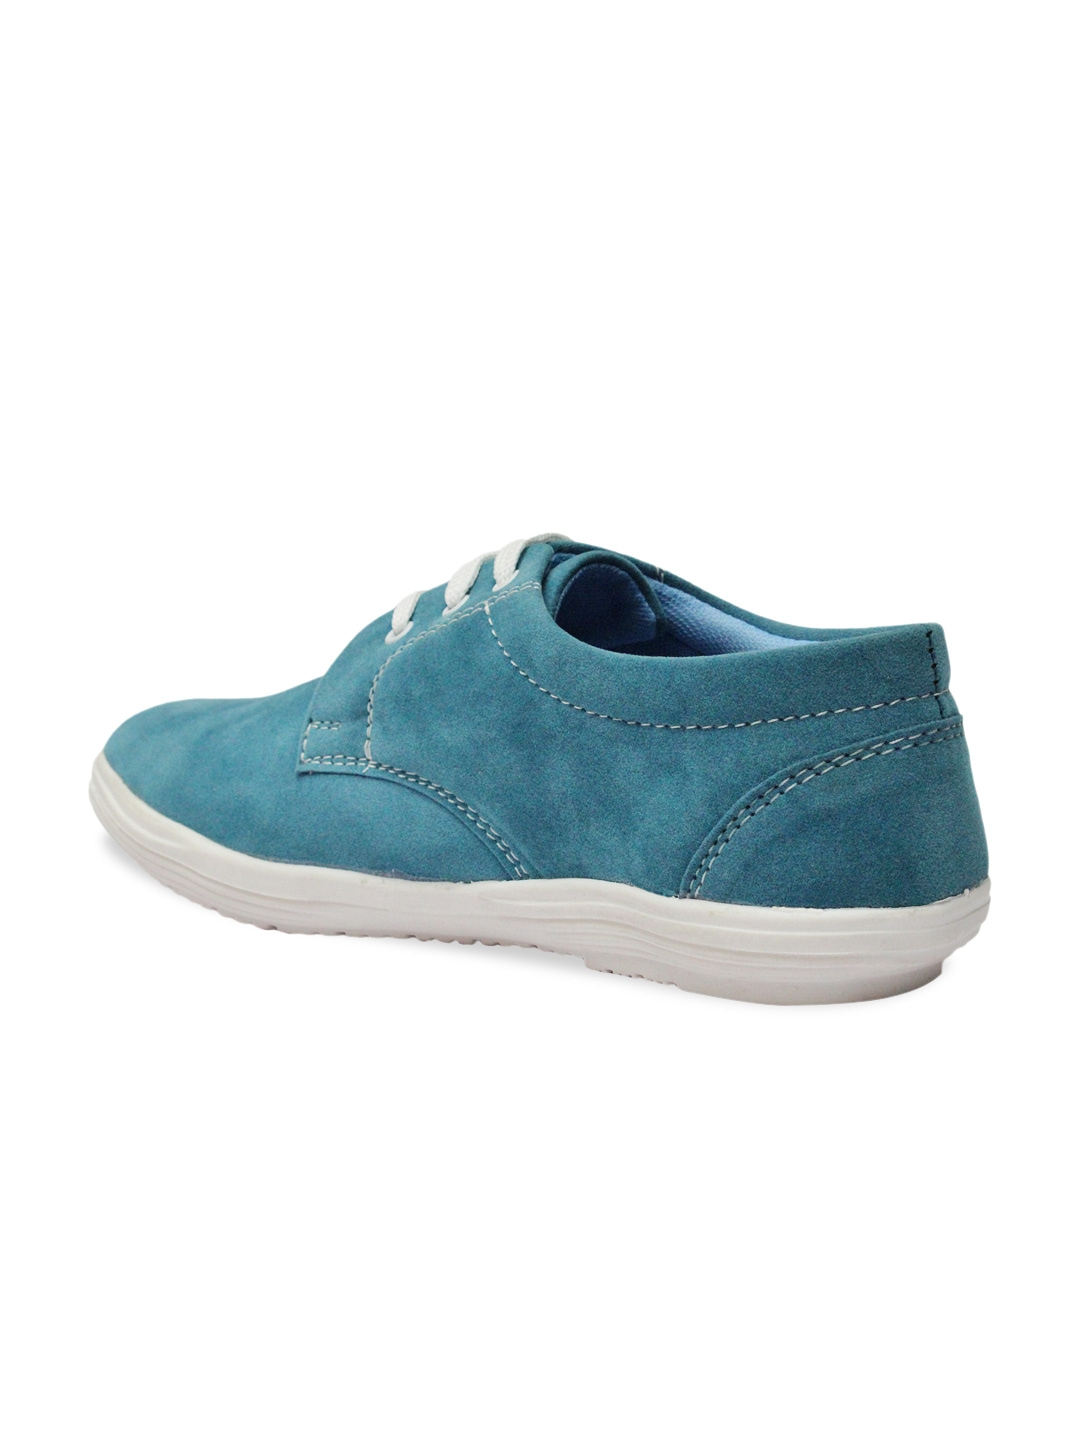 myntra guava blue casual shoes 769667 buy myntra